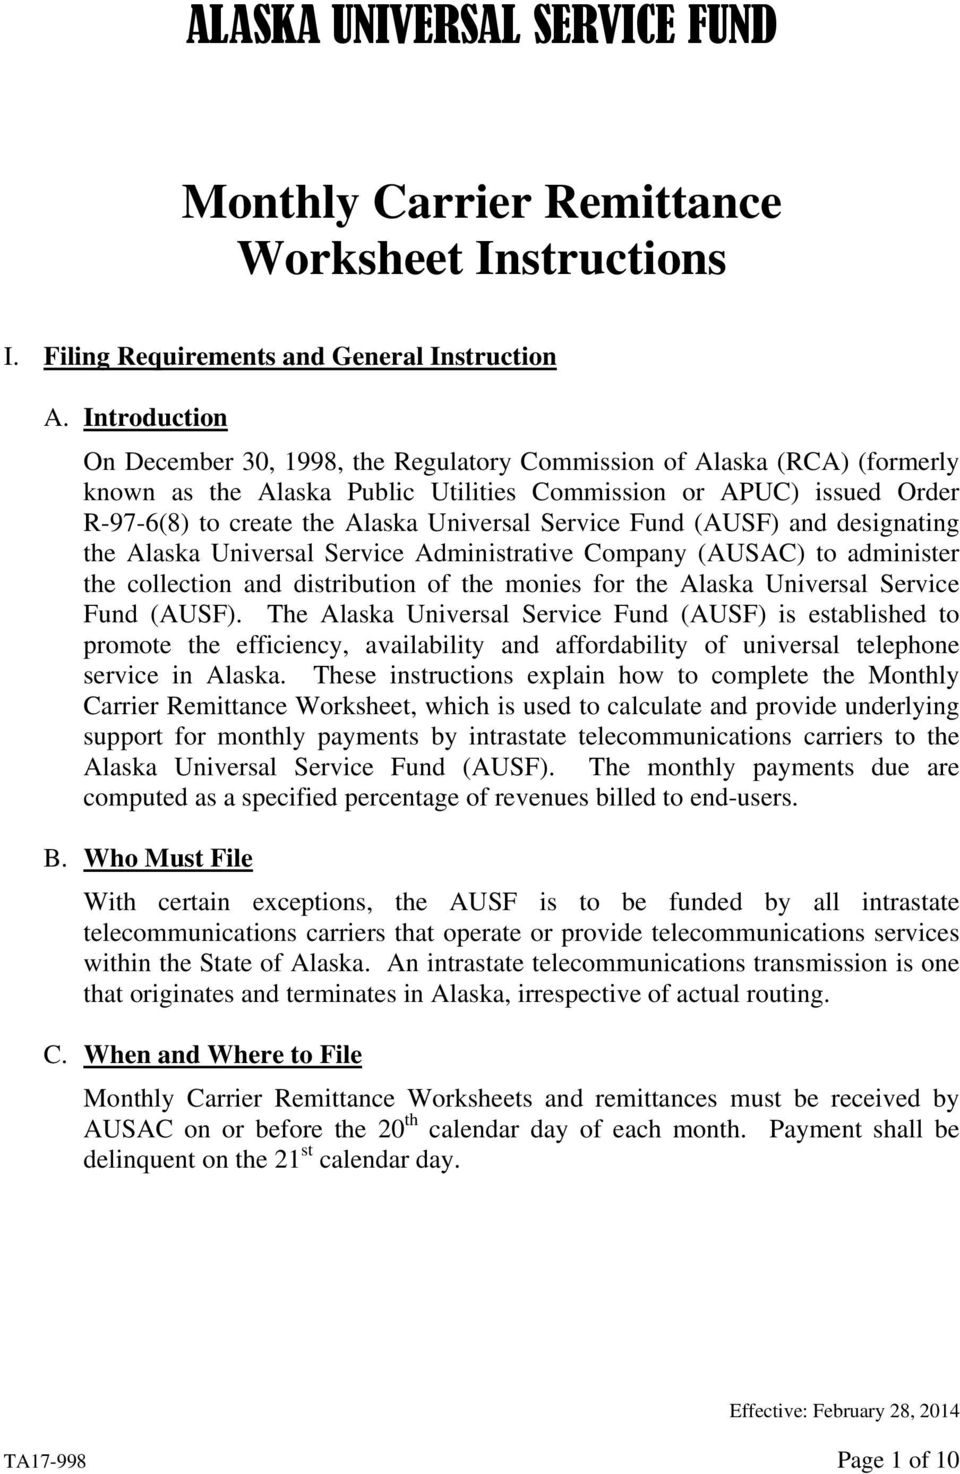 Service Fund (AUSF) and designating the Alaska Universal Service Administrative Company (AUSAC) to administer the collection and distribution of the monies for the Alaska Universal Service Fund